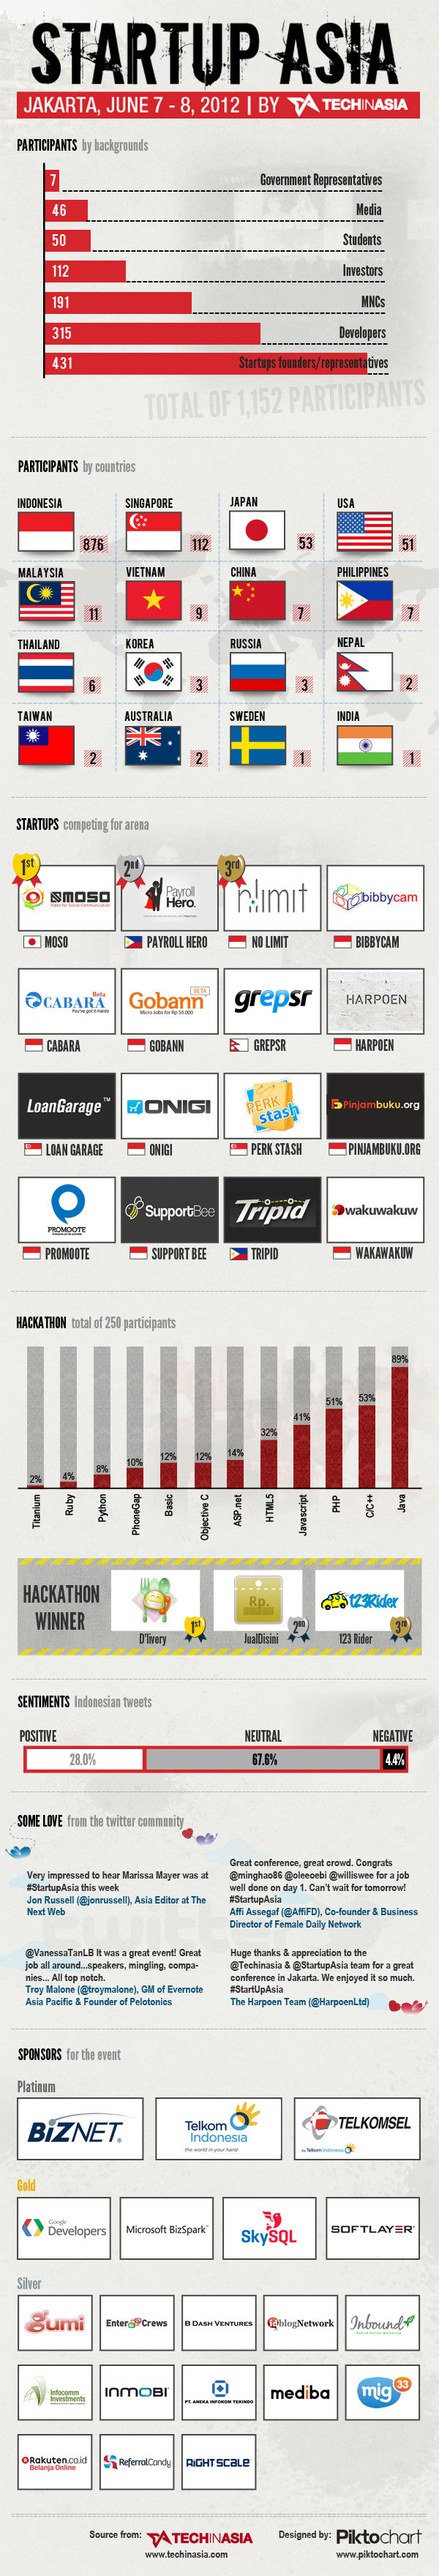 Startup Asia Jakarta 2012 in an Infographic Start up